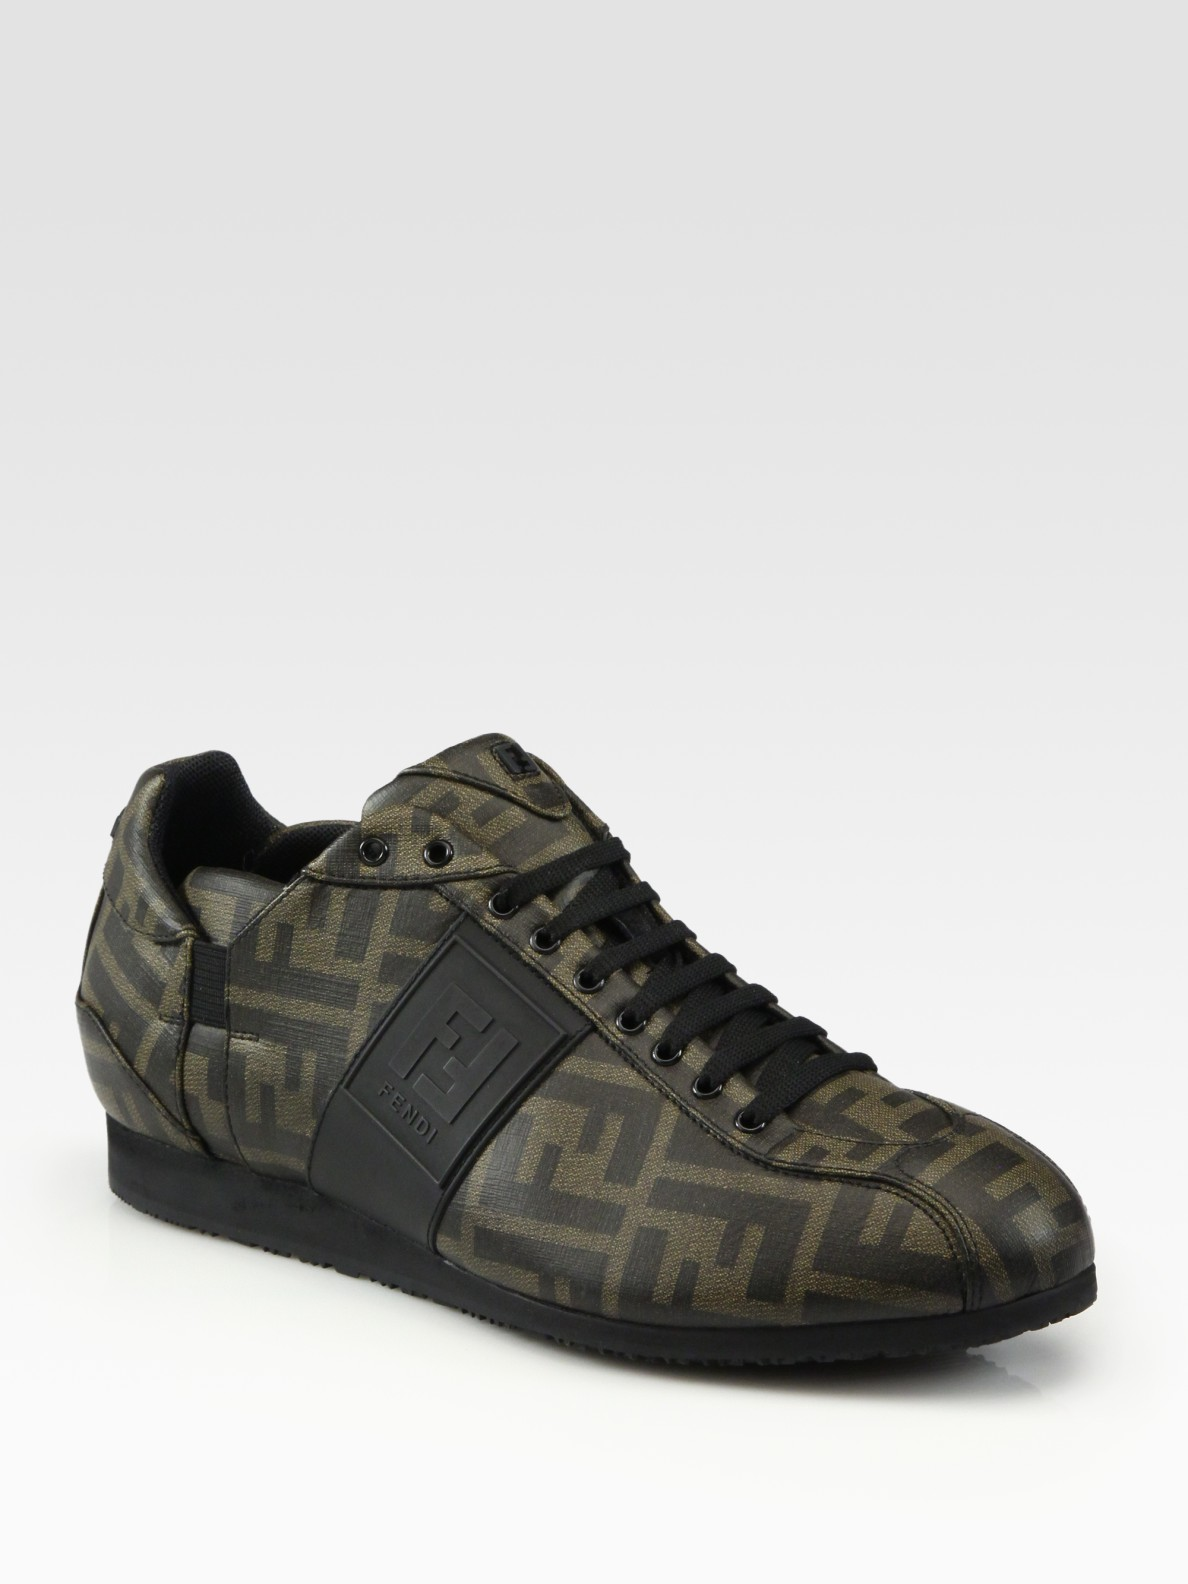 Lyst Fendi Zucca Canvas Sneakers In Brown For Men